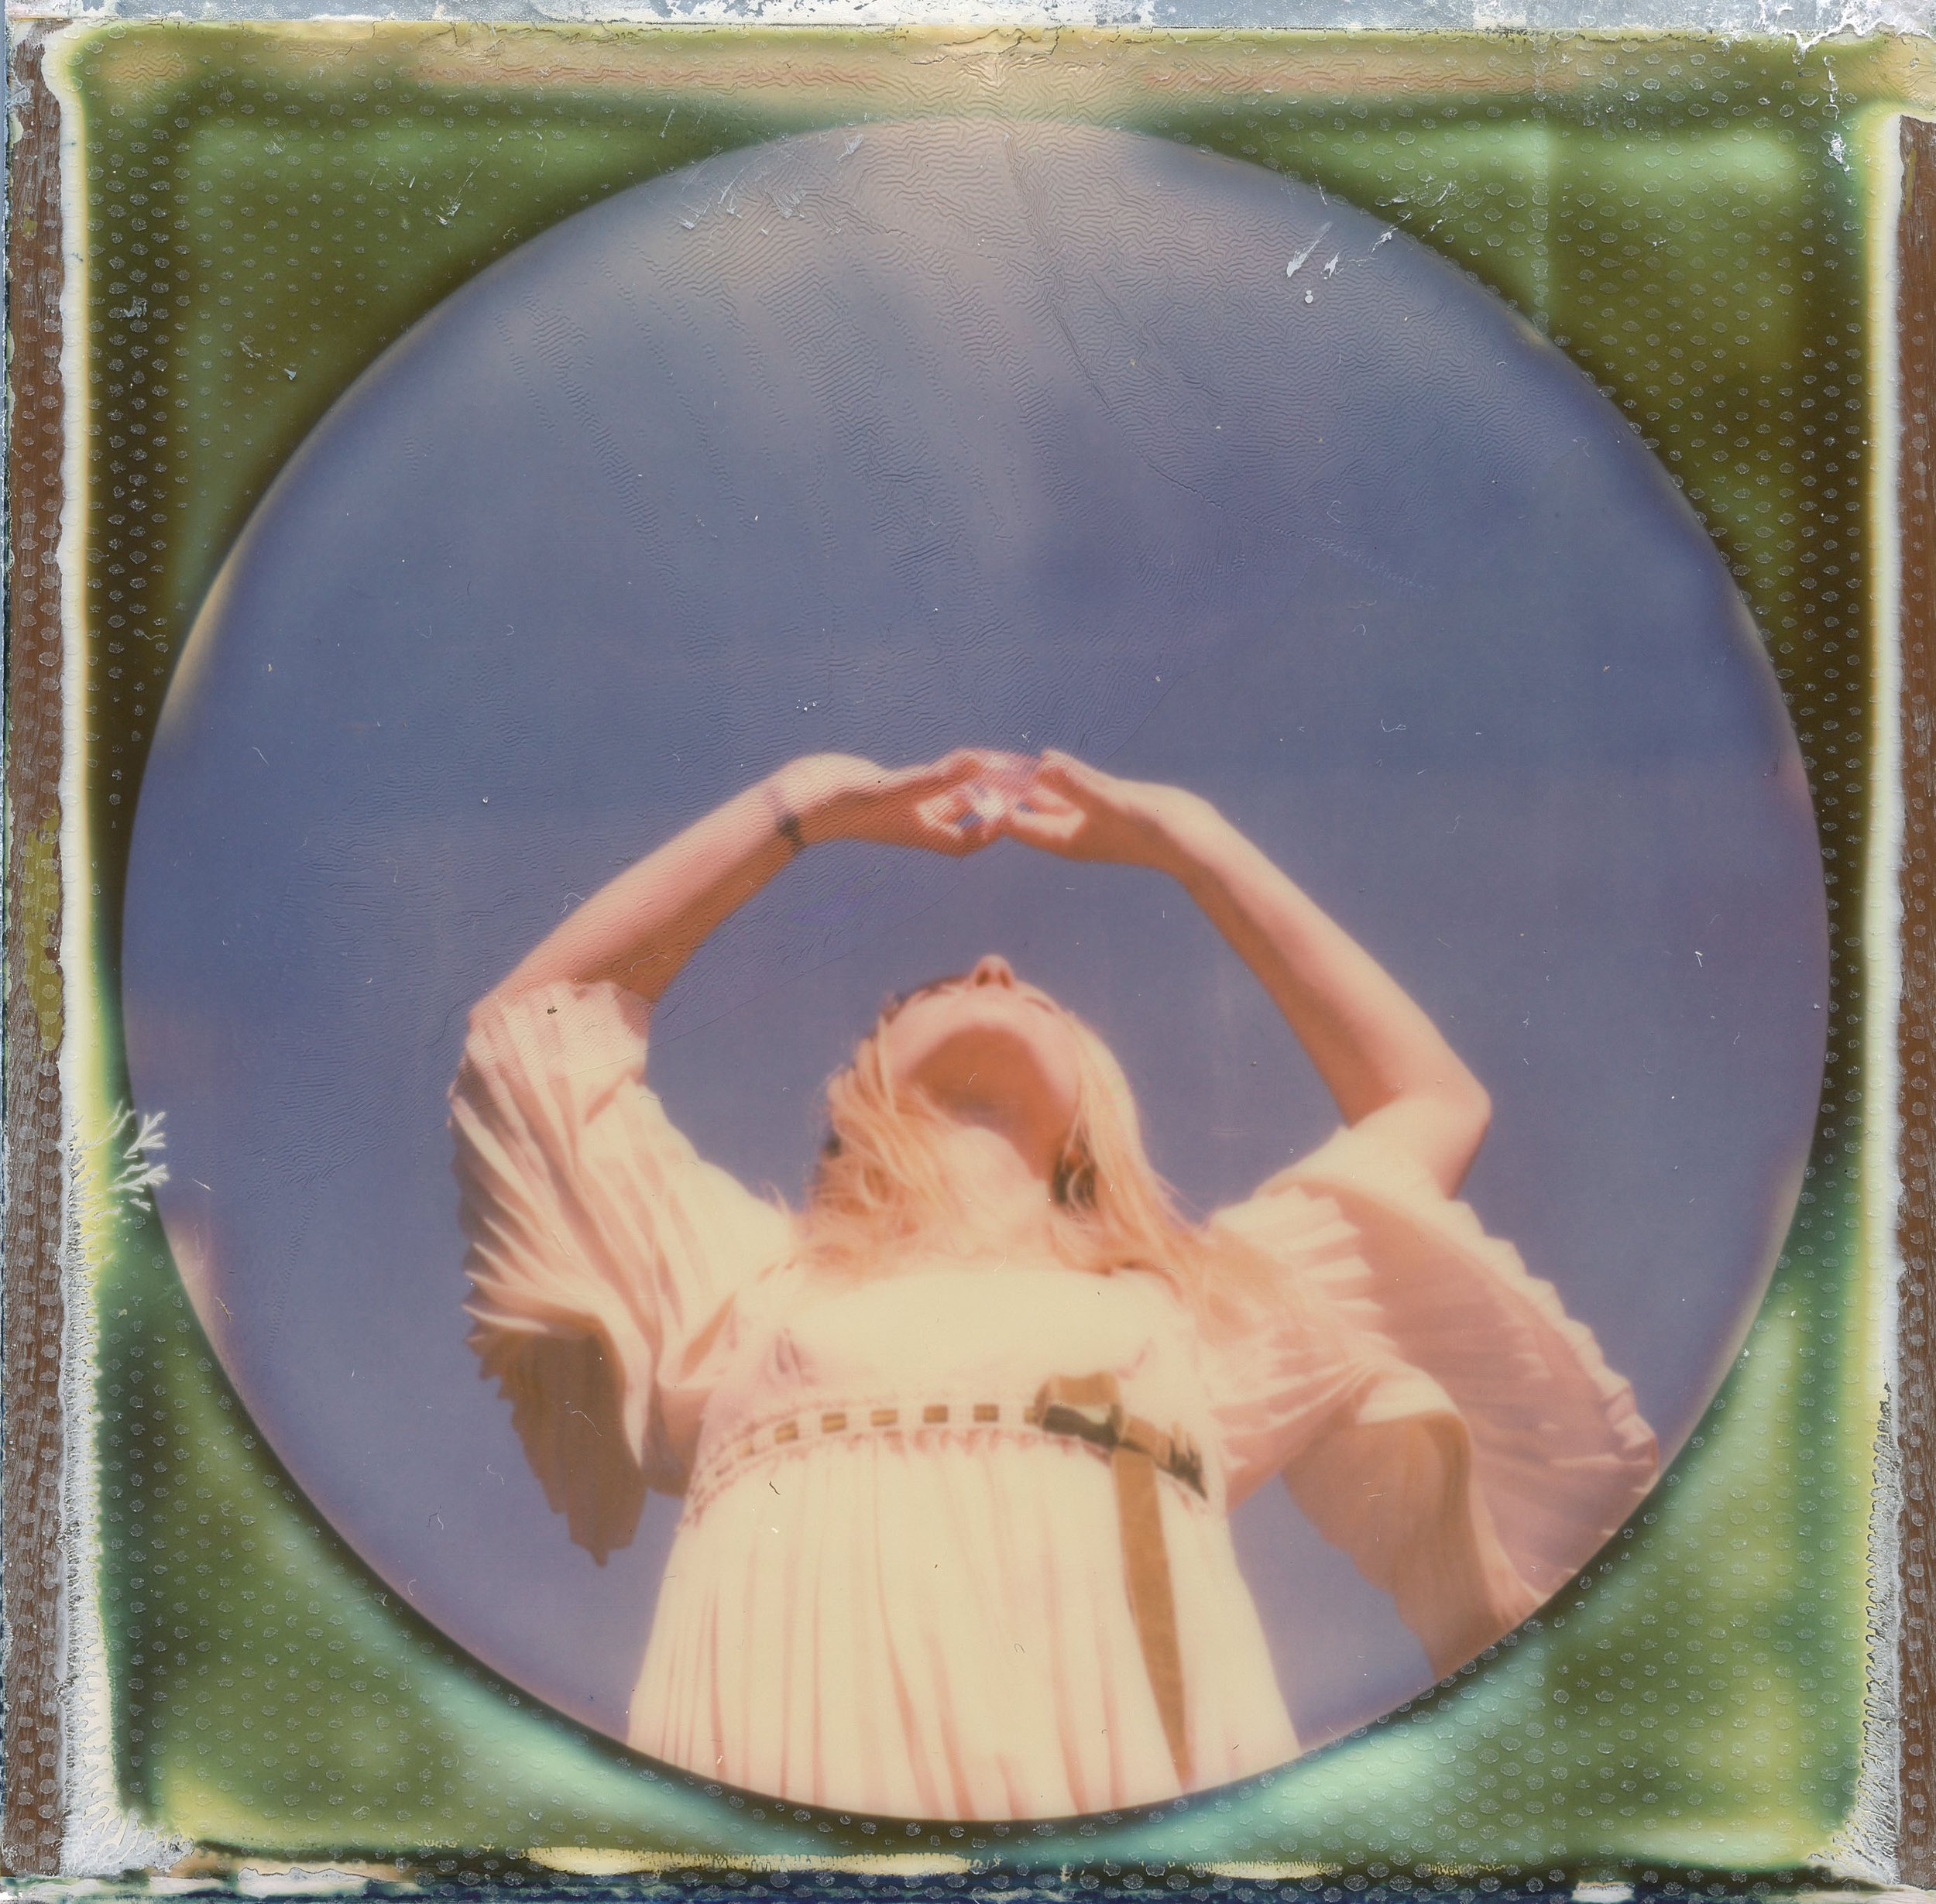 Crystal Conscience | SX-70 | Expired Impossible Project Round Frame | Britt Grimm